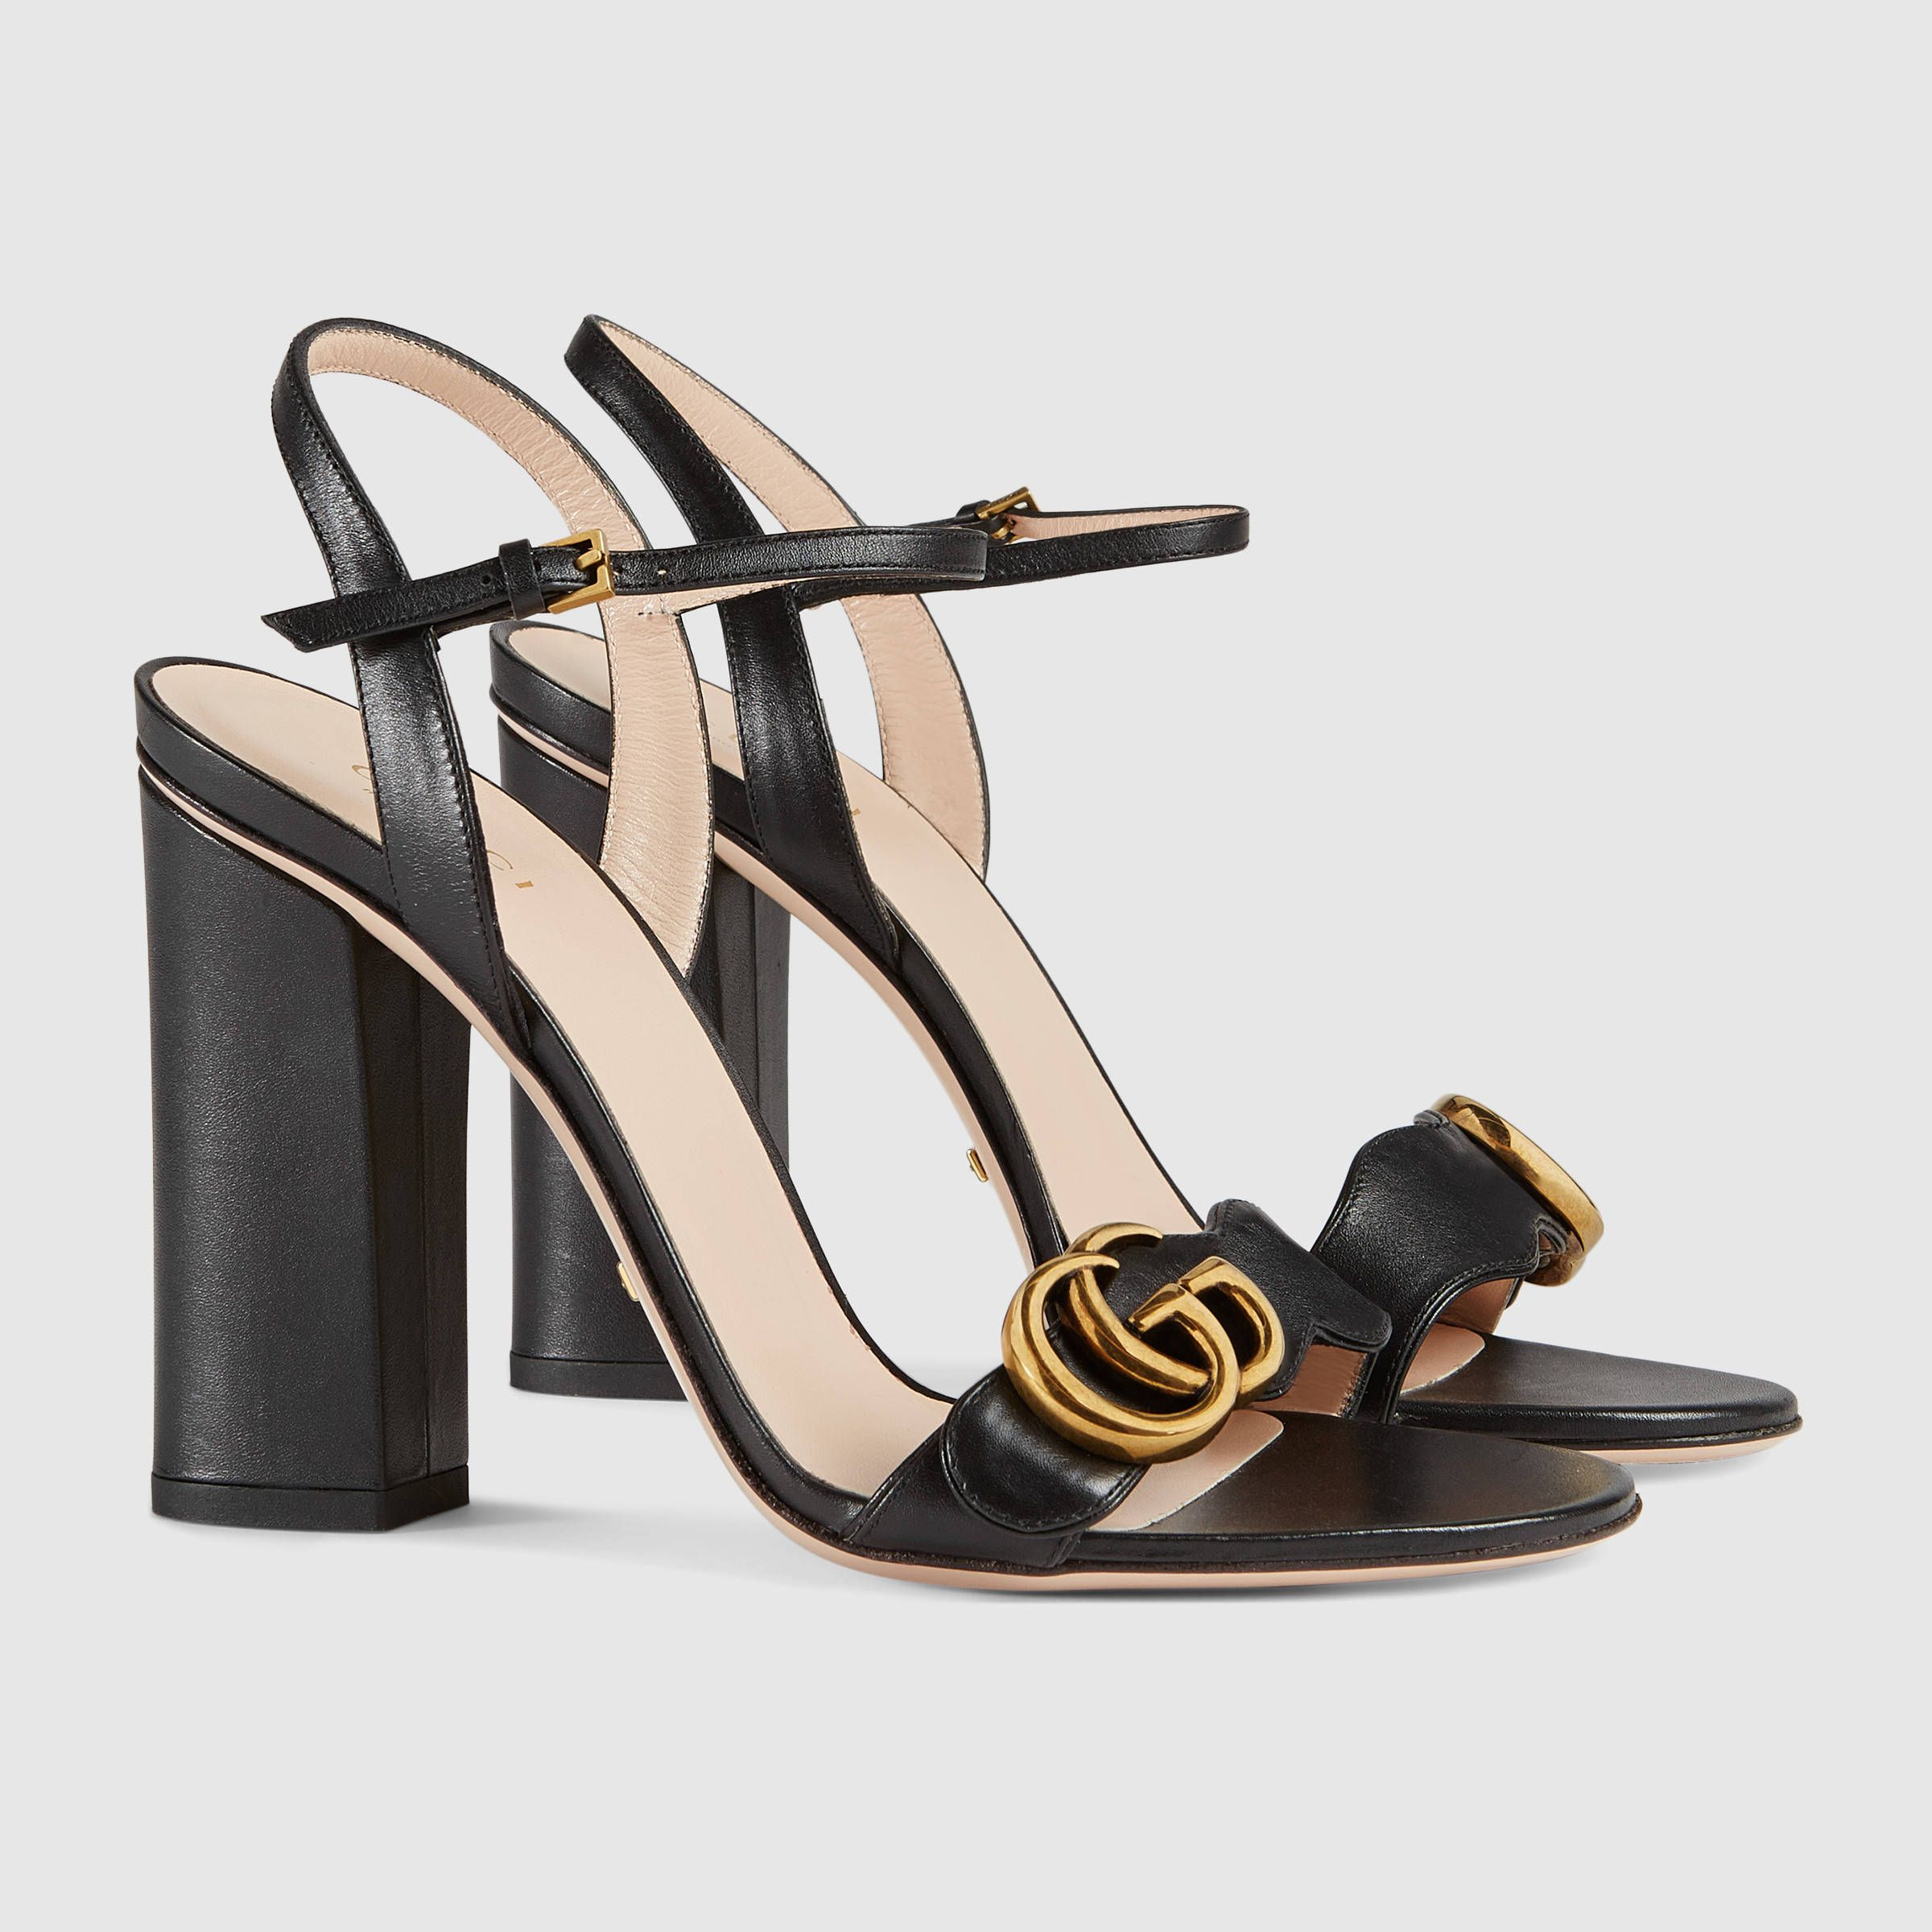 Gucci Leather sandal   Leather sandals